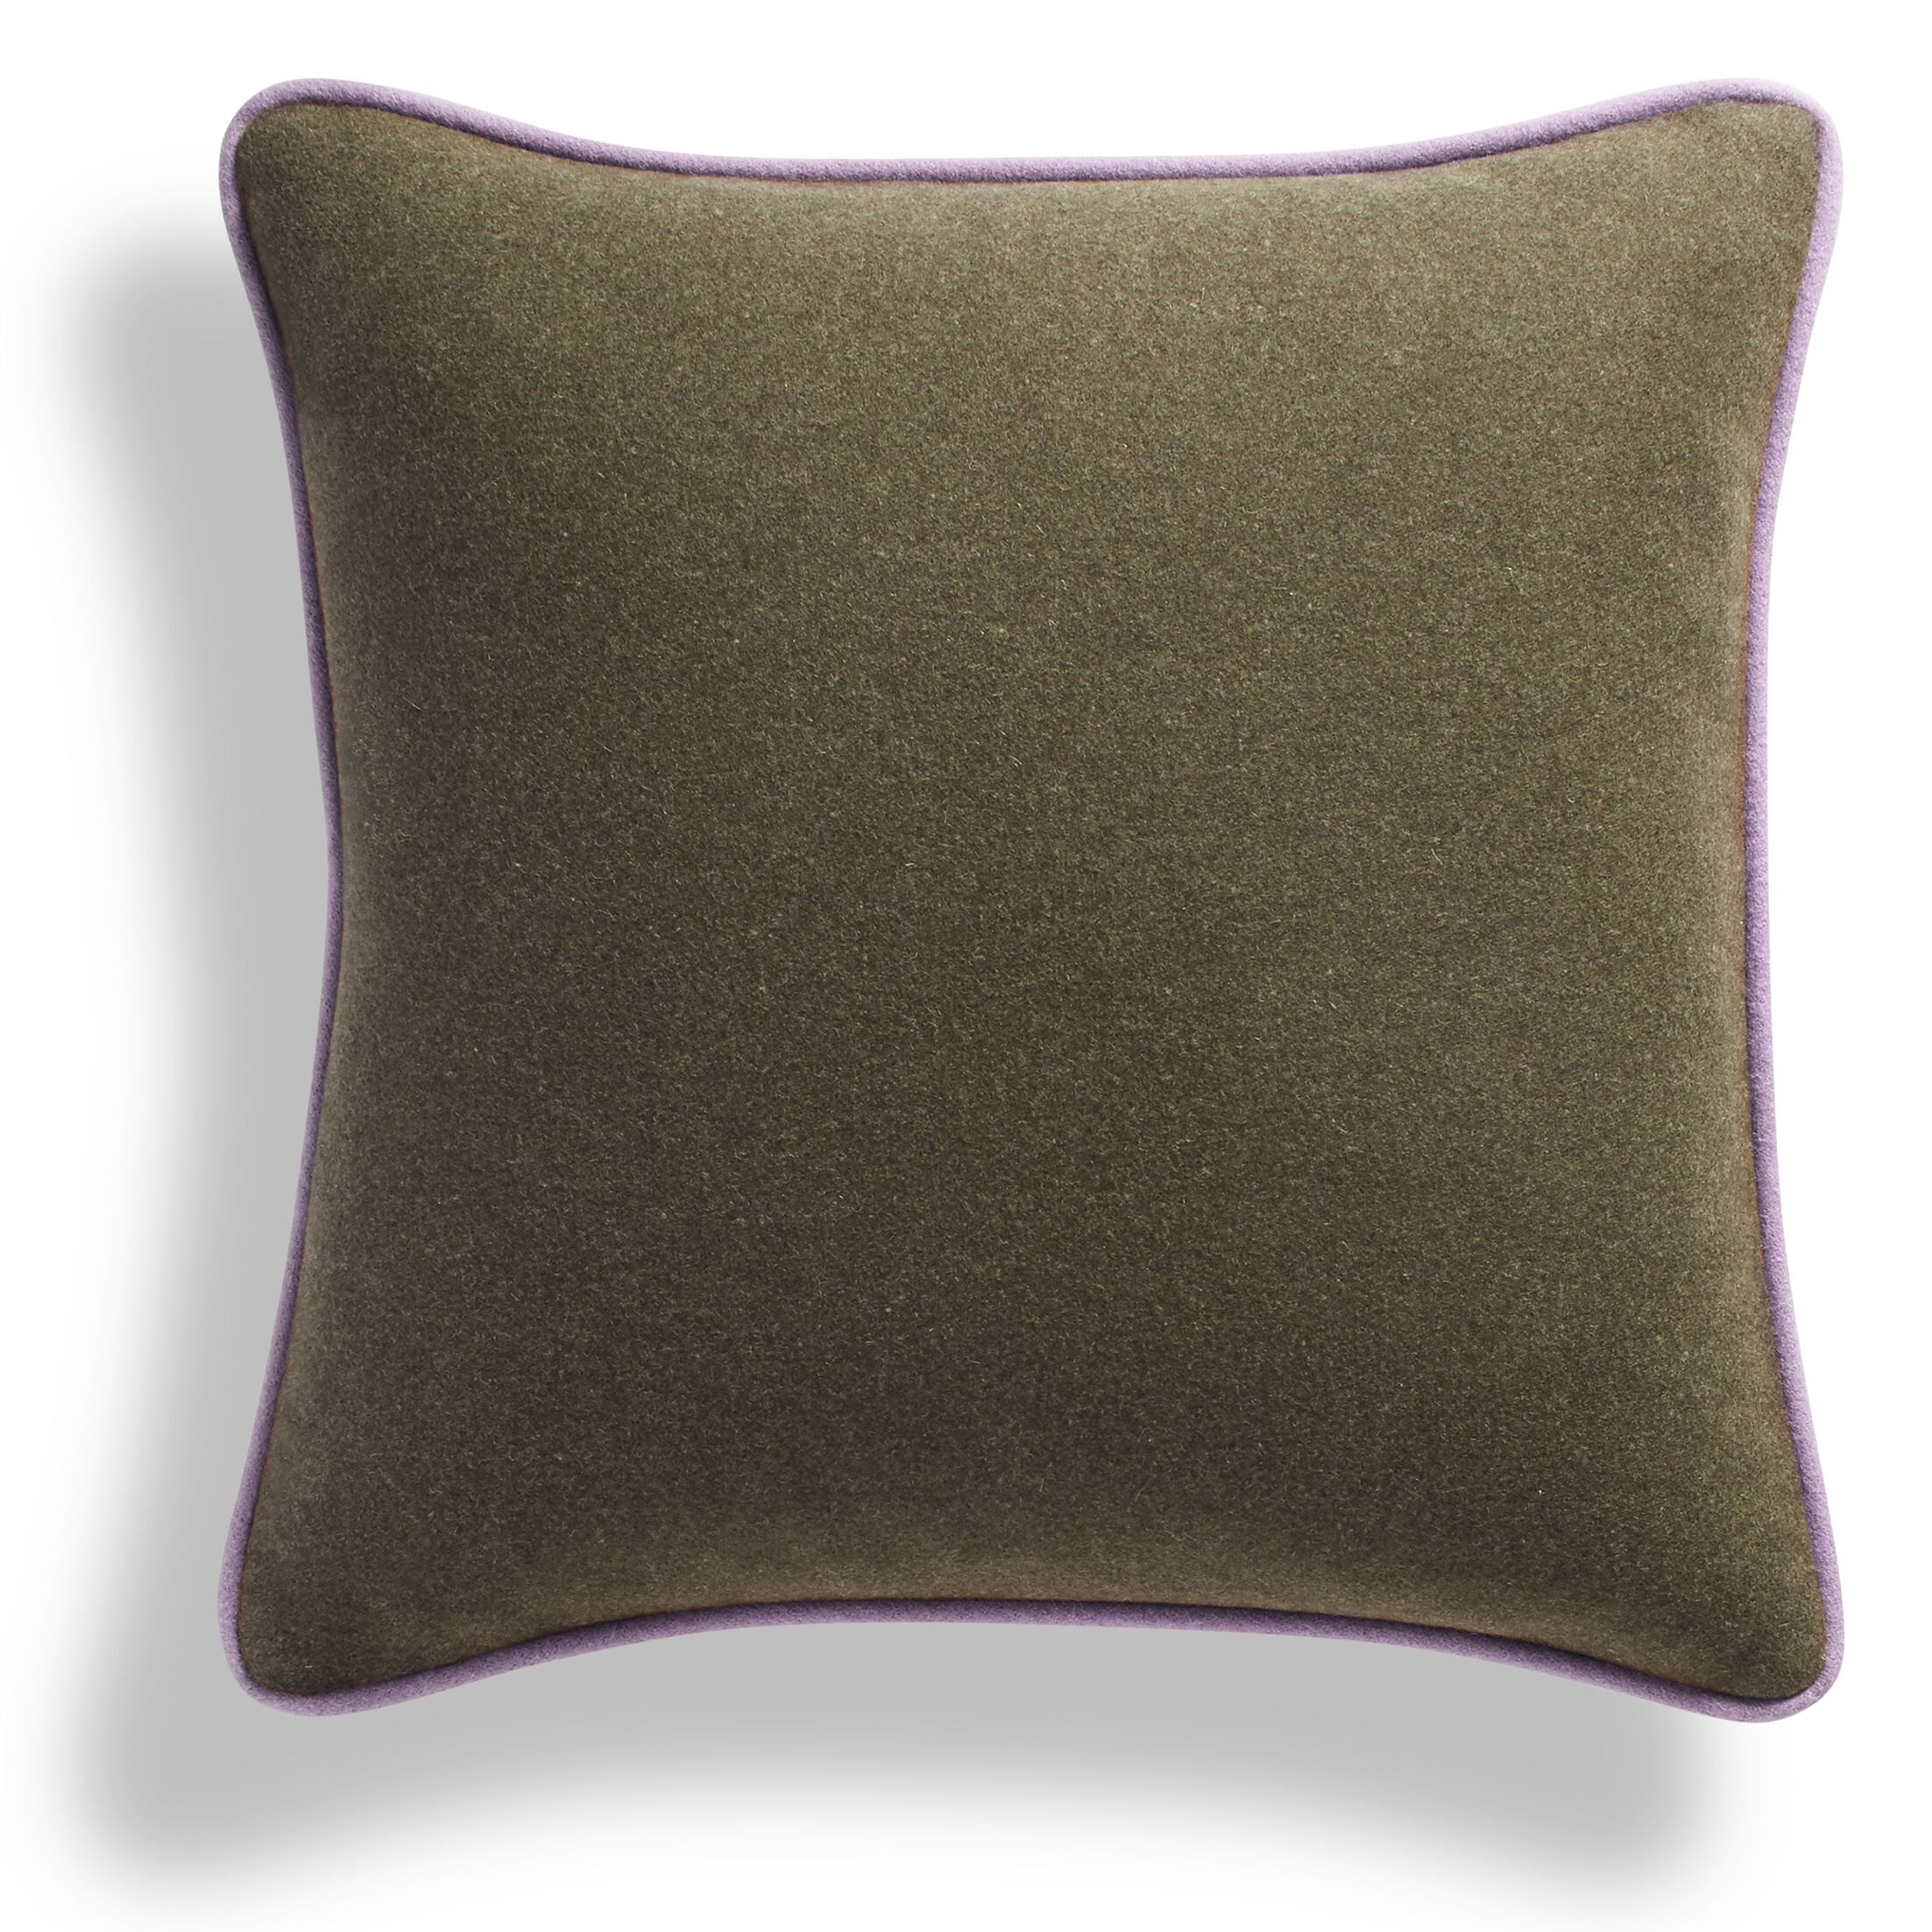 Duck Duck Square Pillow Color: Thurmond Olive/Wheat/Lilac Piping